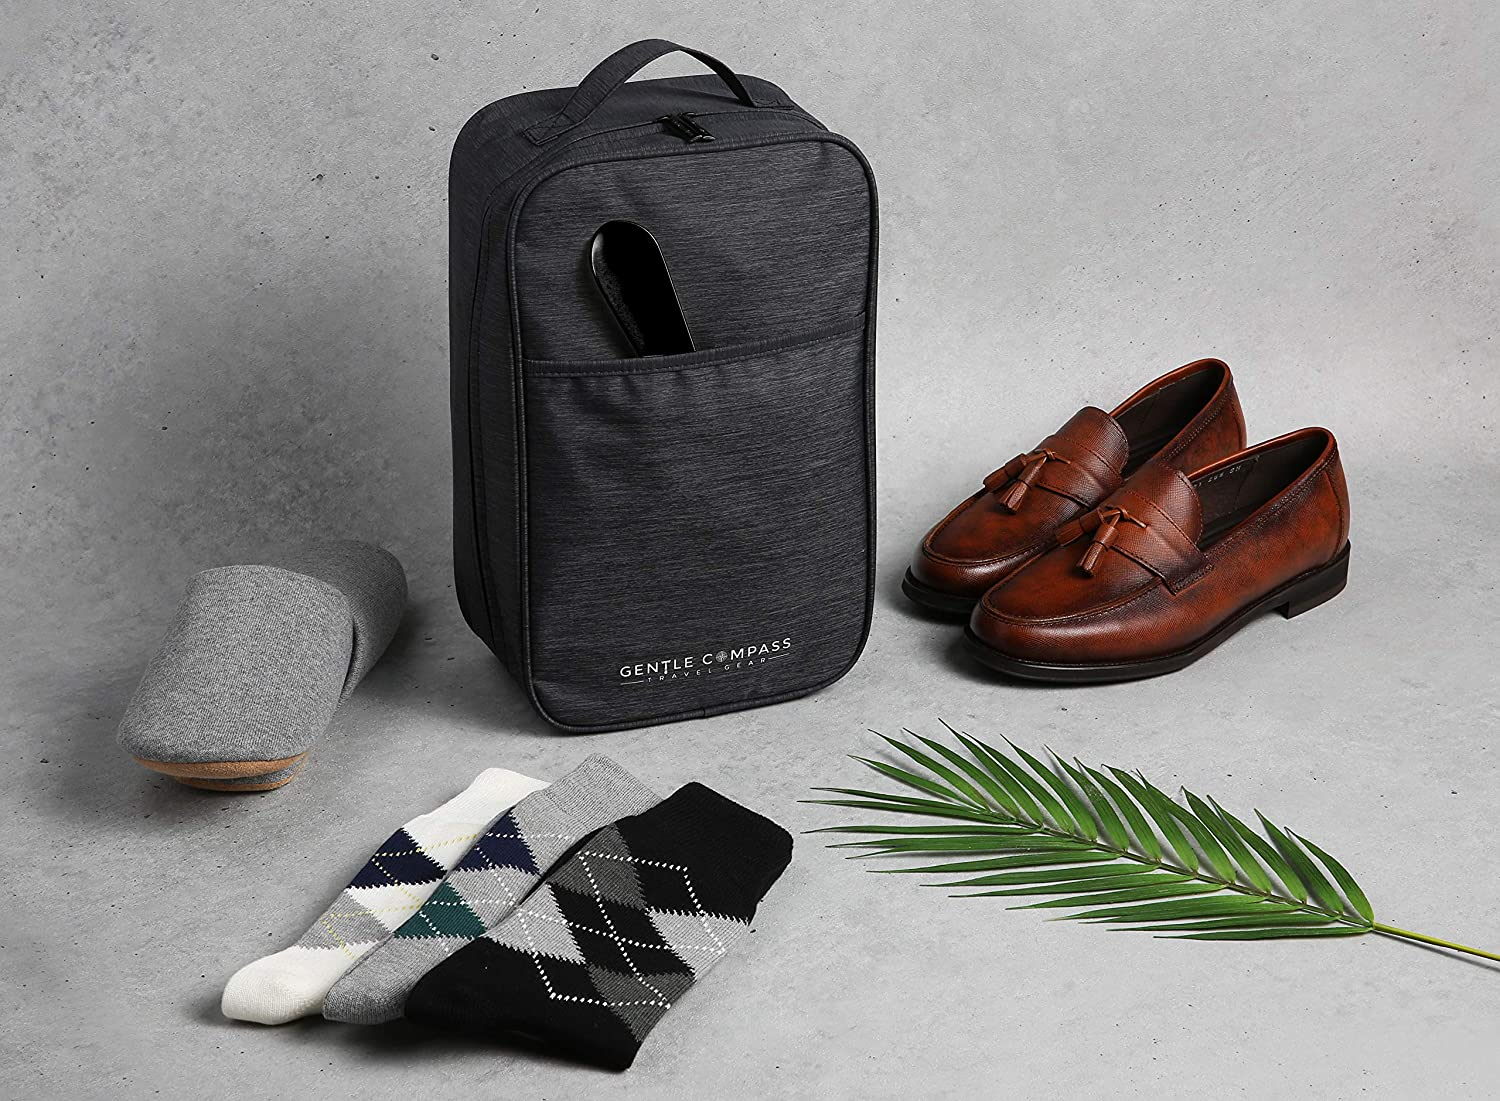 Gentle Compass Travel Shoe Bag...